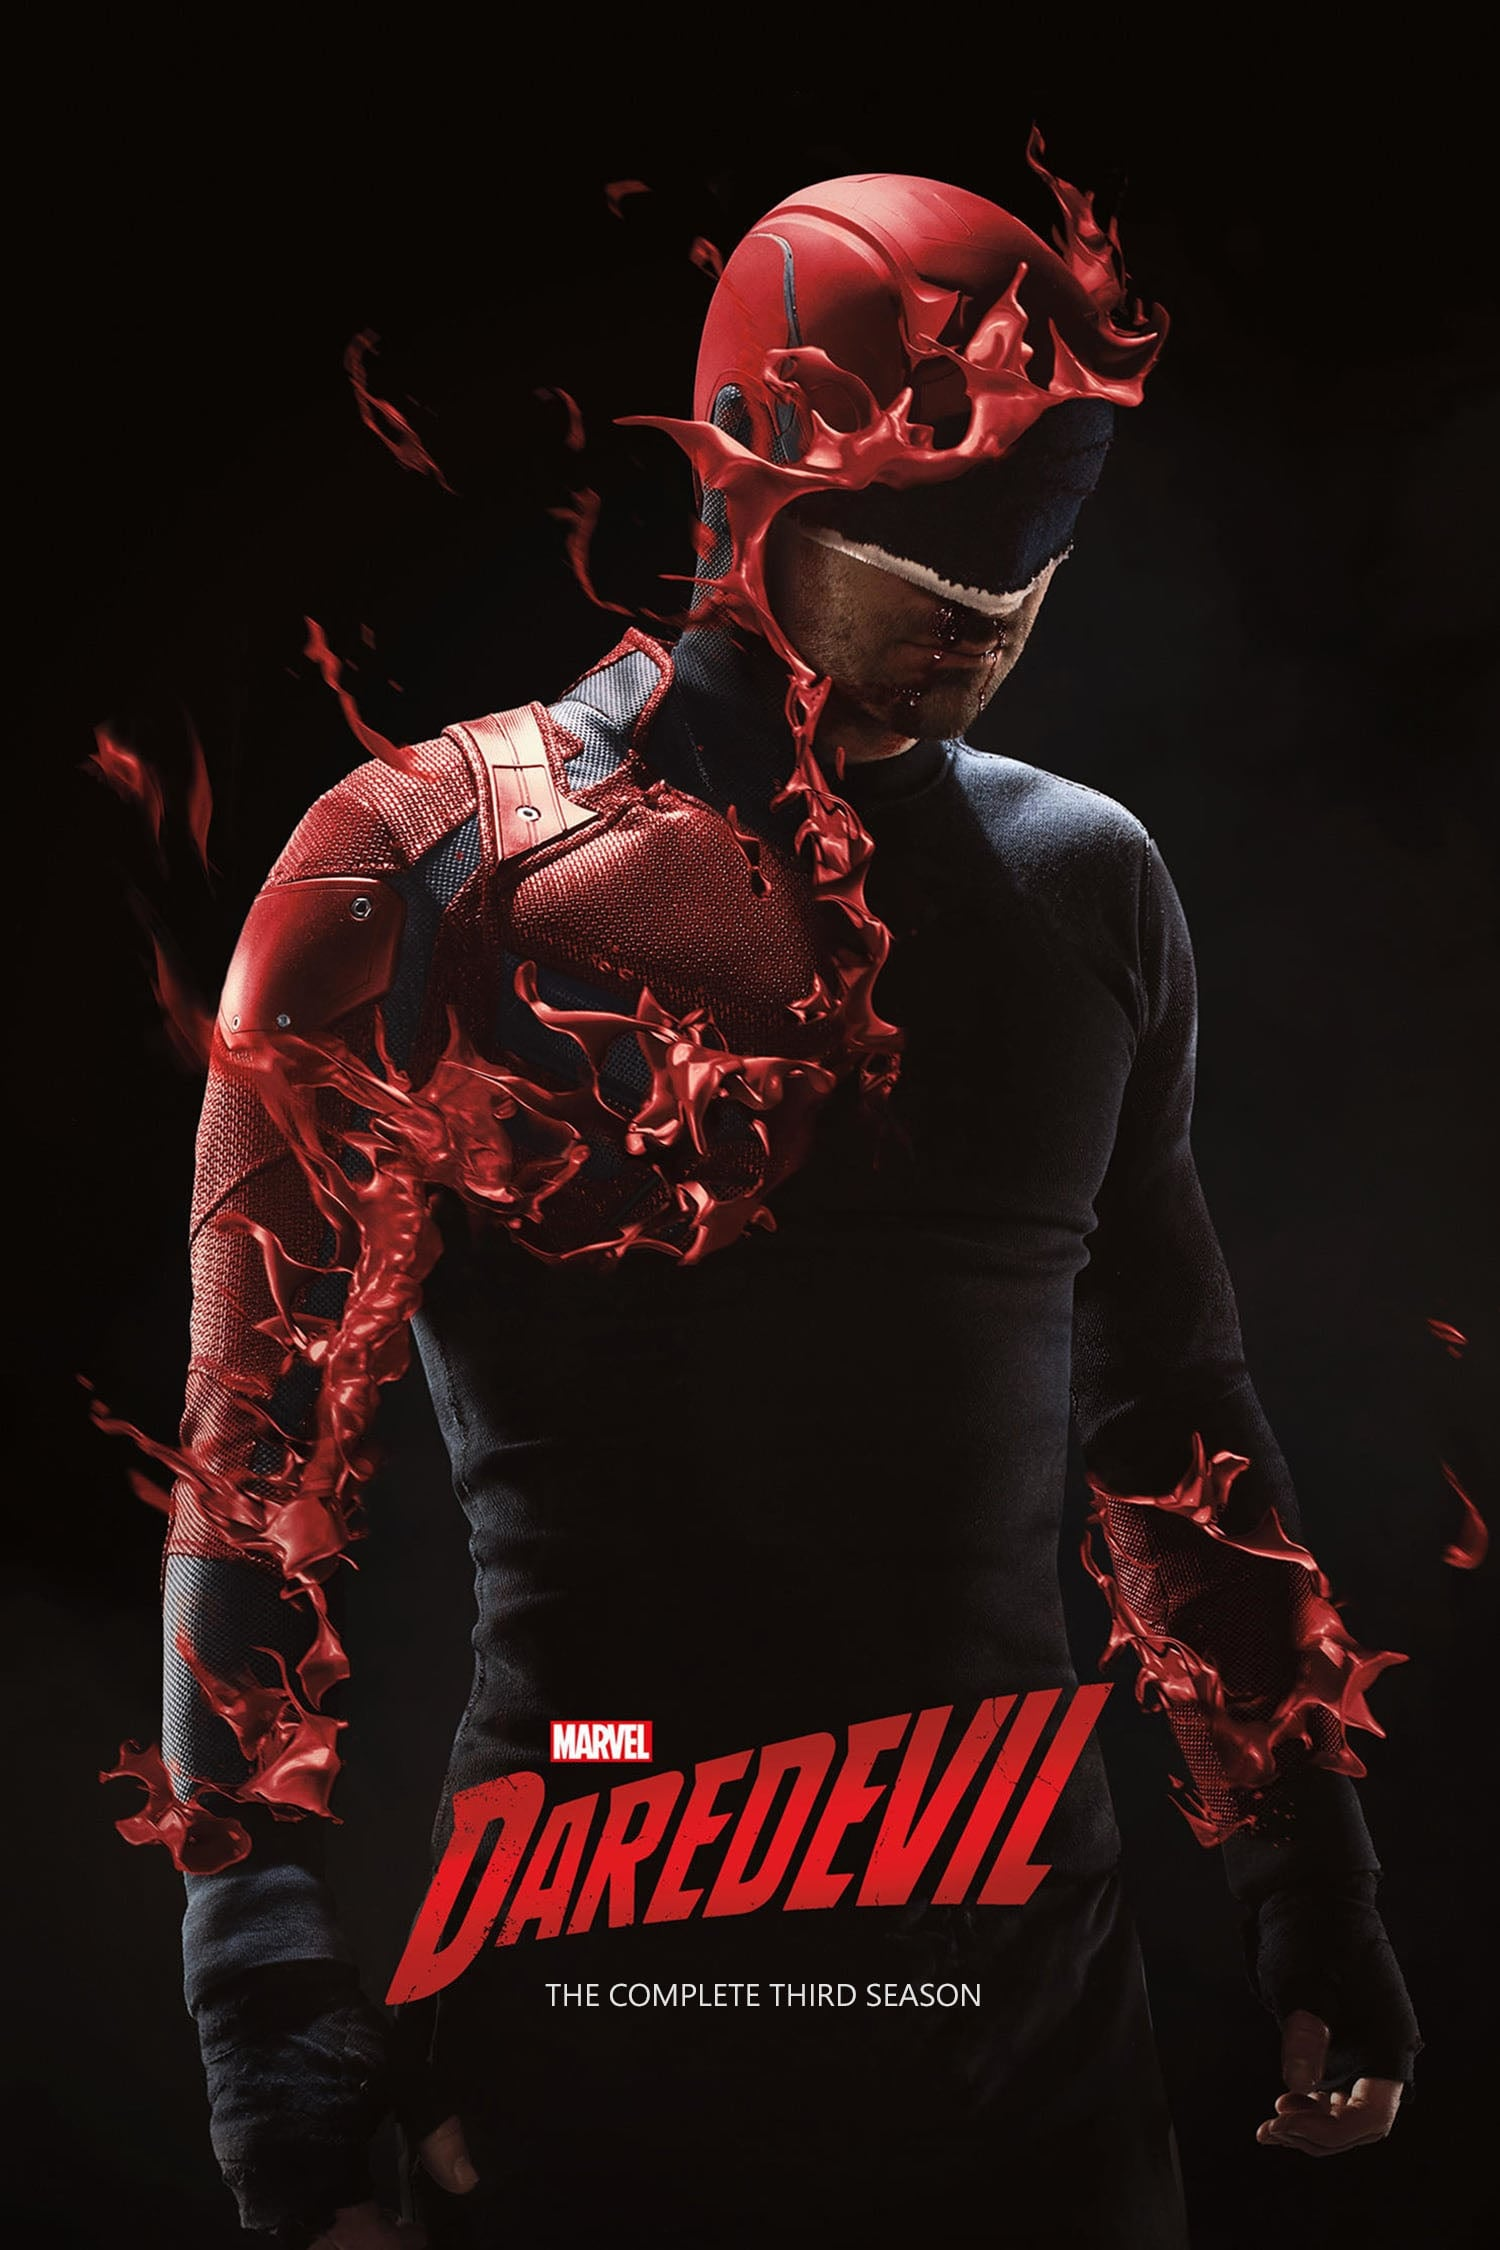 Nonton Marvel's Daredevil Season 3 Episode 10 Subtitle Indonesia dan English